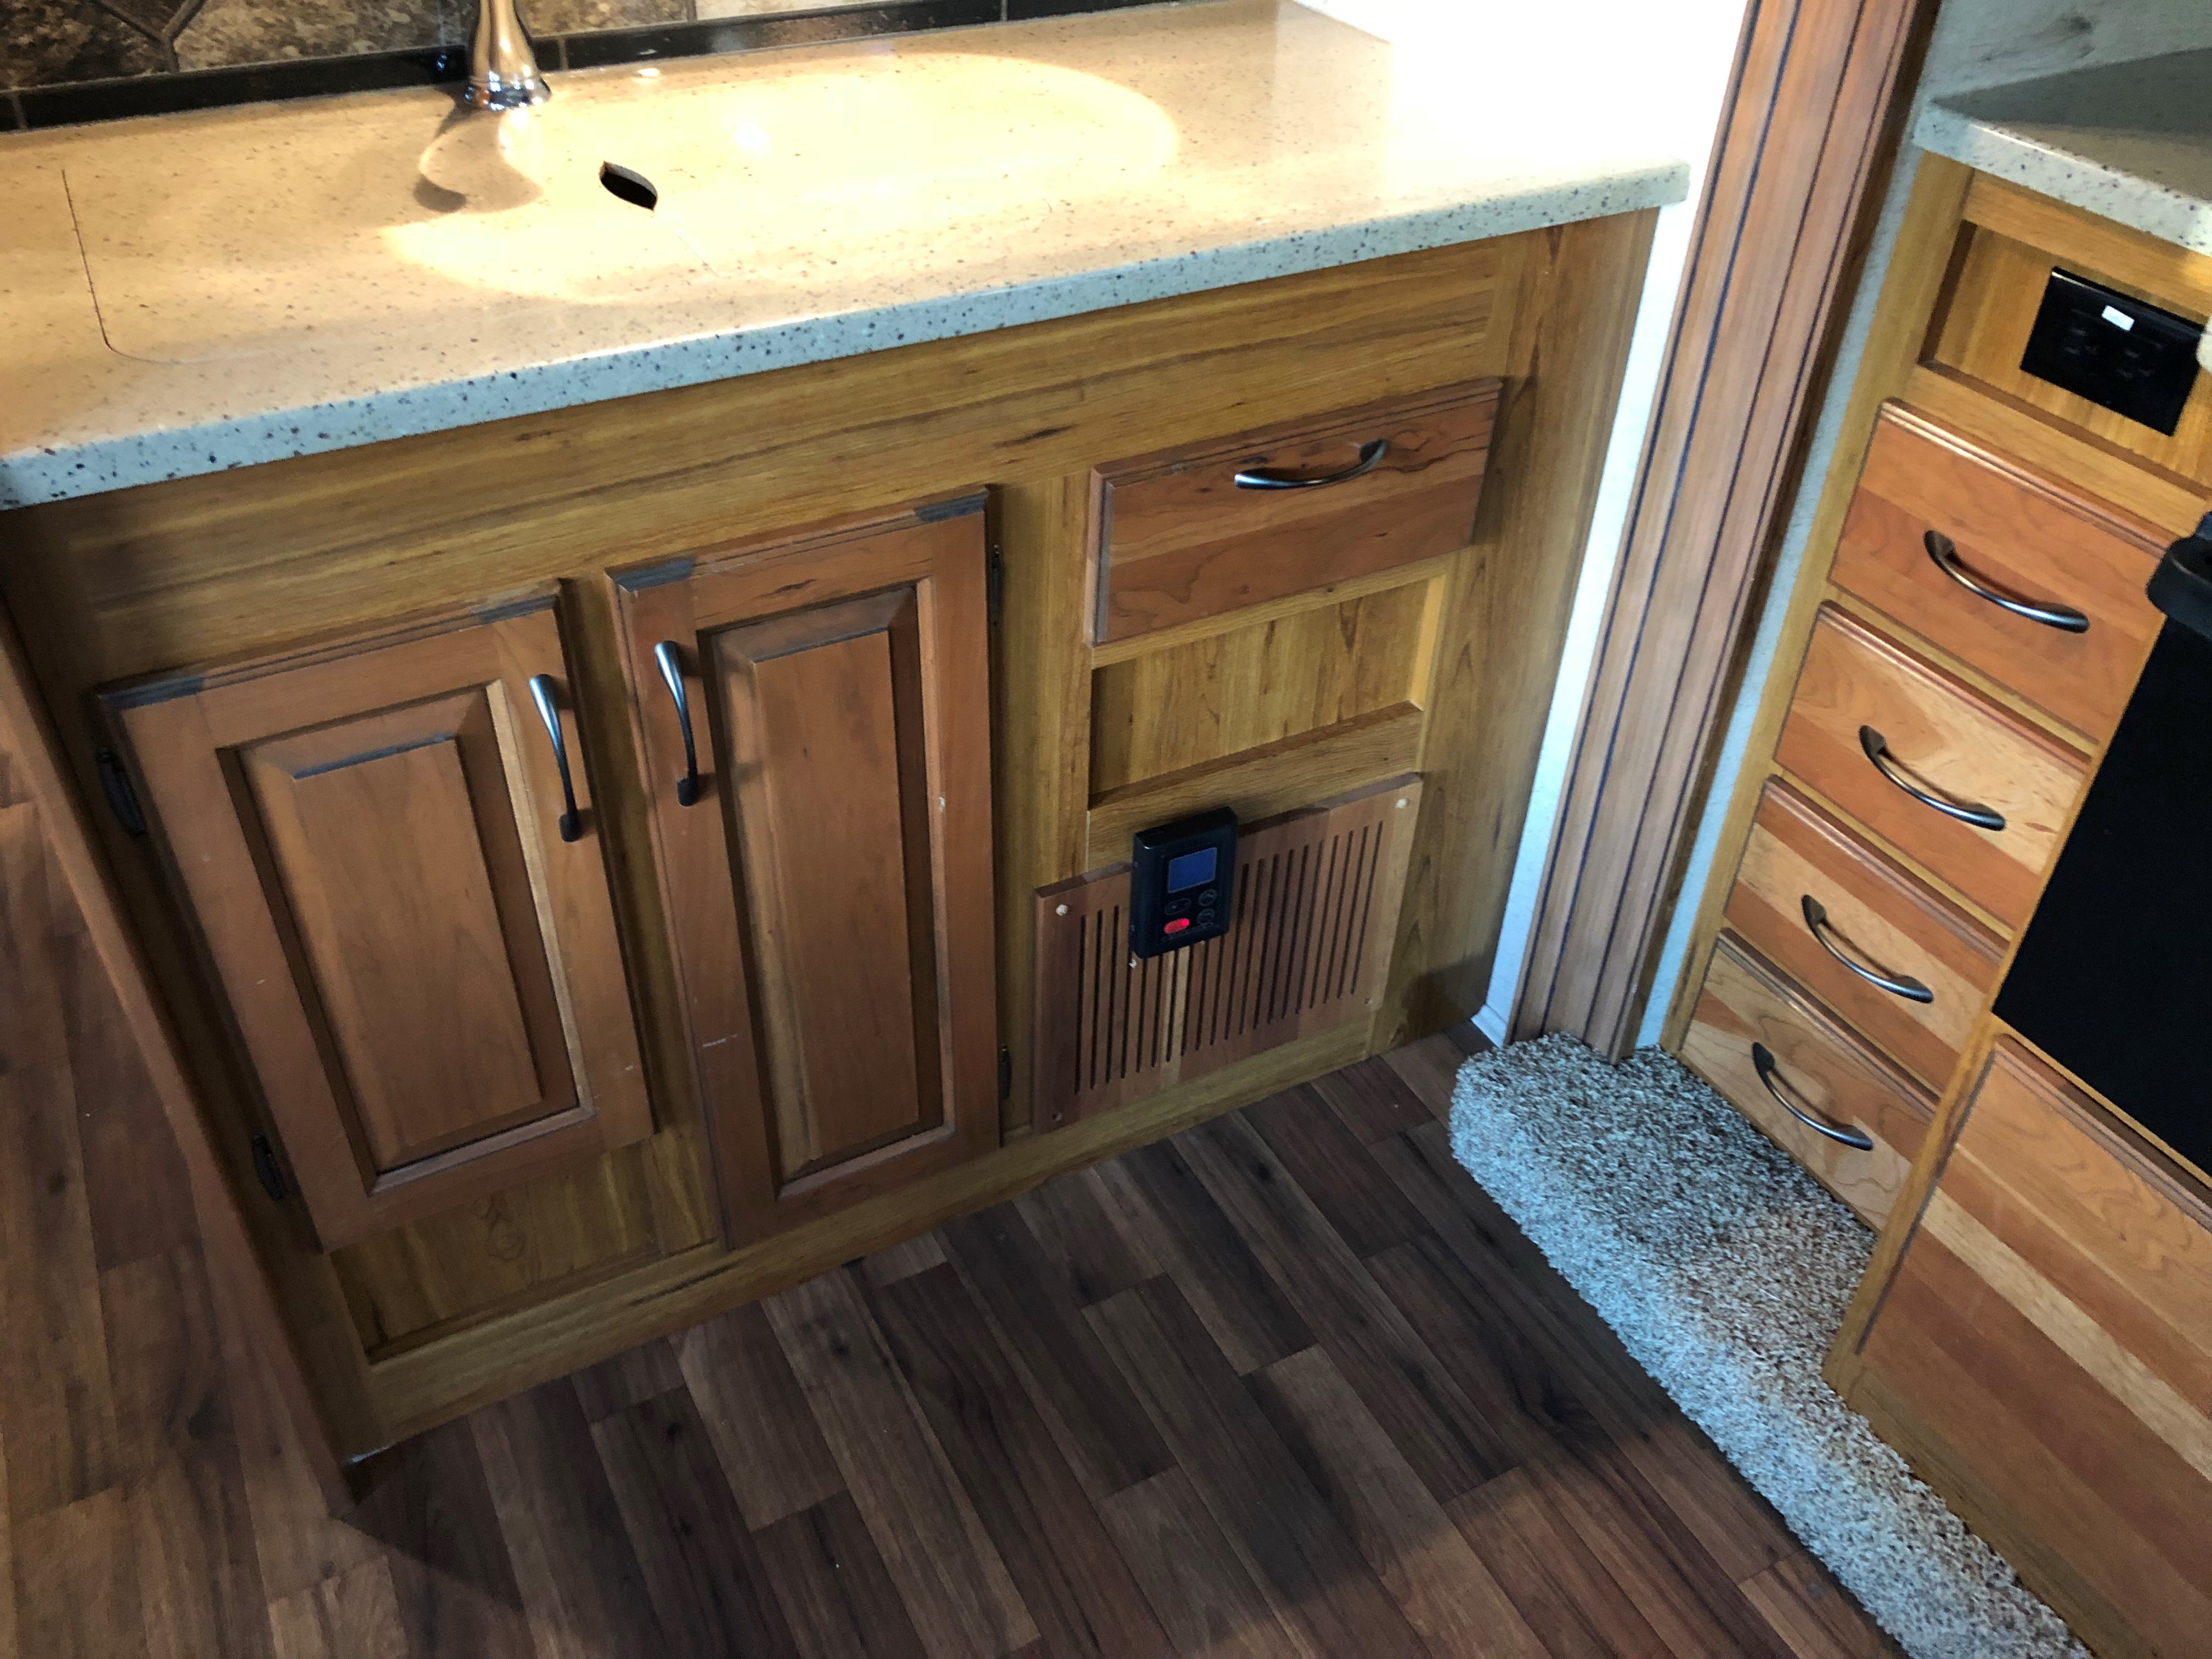 hardwood floor repair greenville sc of top 25 gaston county nc rv rentals and motorhome rentals outdoorsy intended for cvvzaqpyabesnkjhxkqp